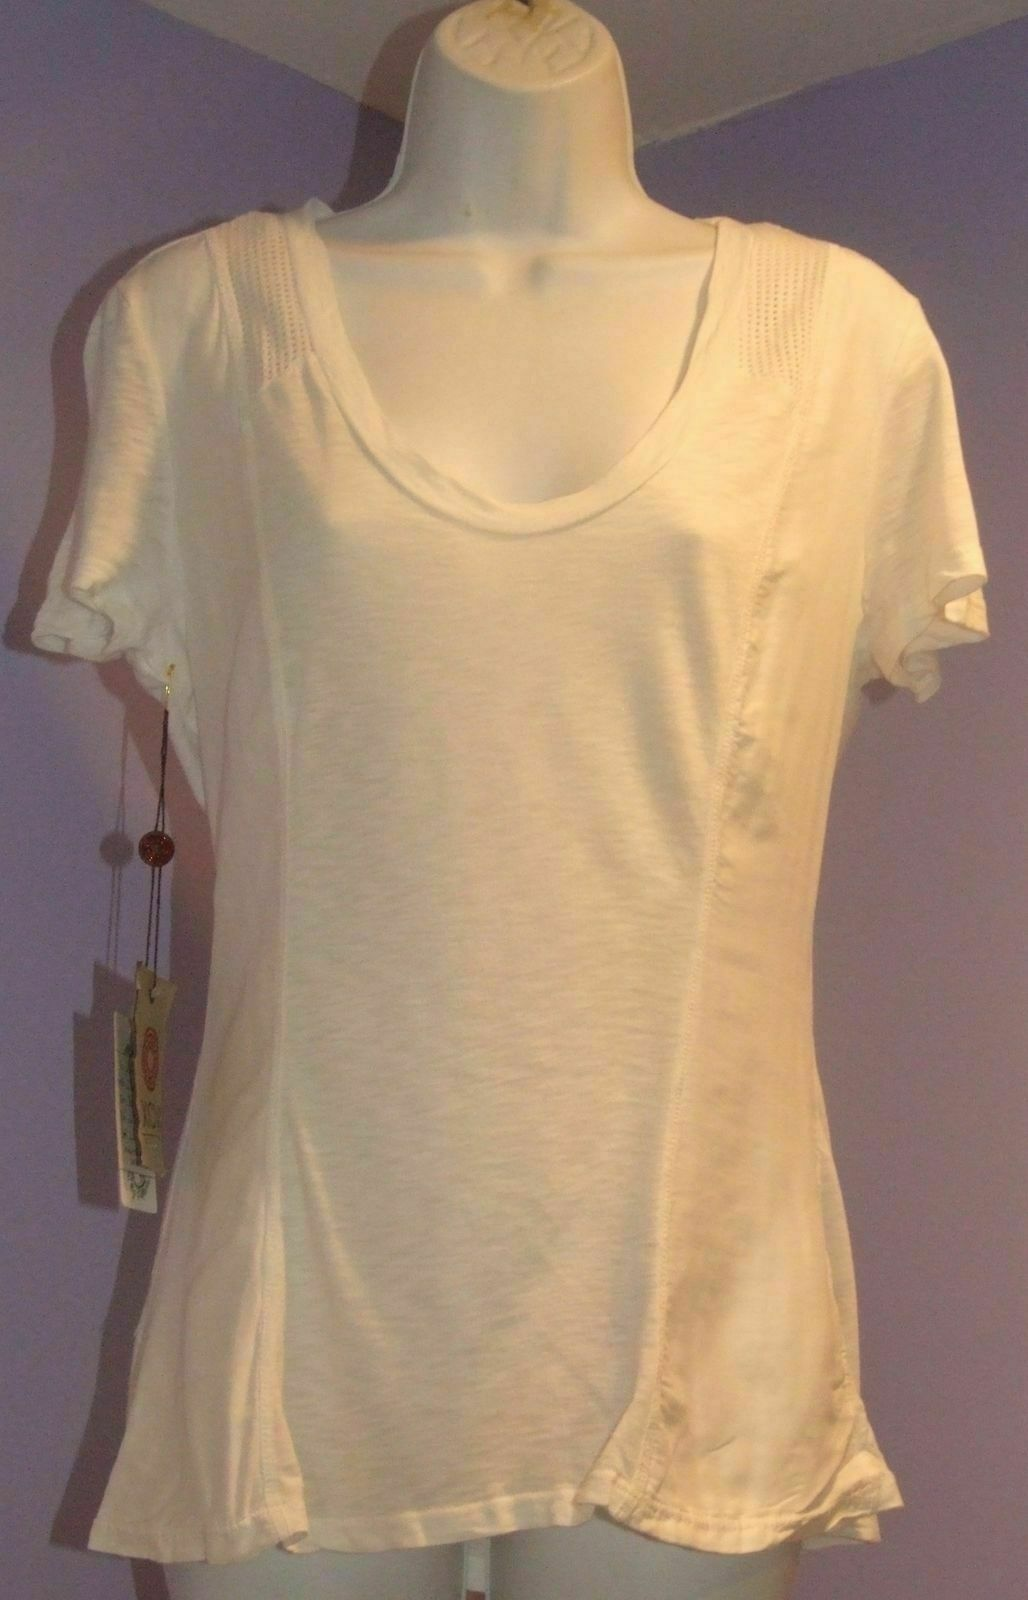 NEW Womens XCVI White T-Shirt w Mesh on Shoulders L